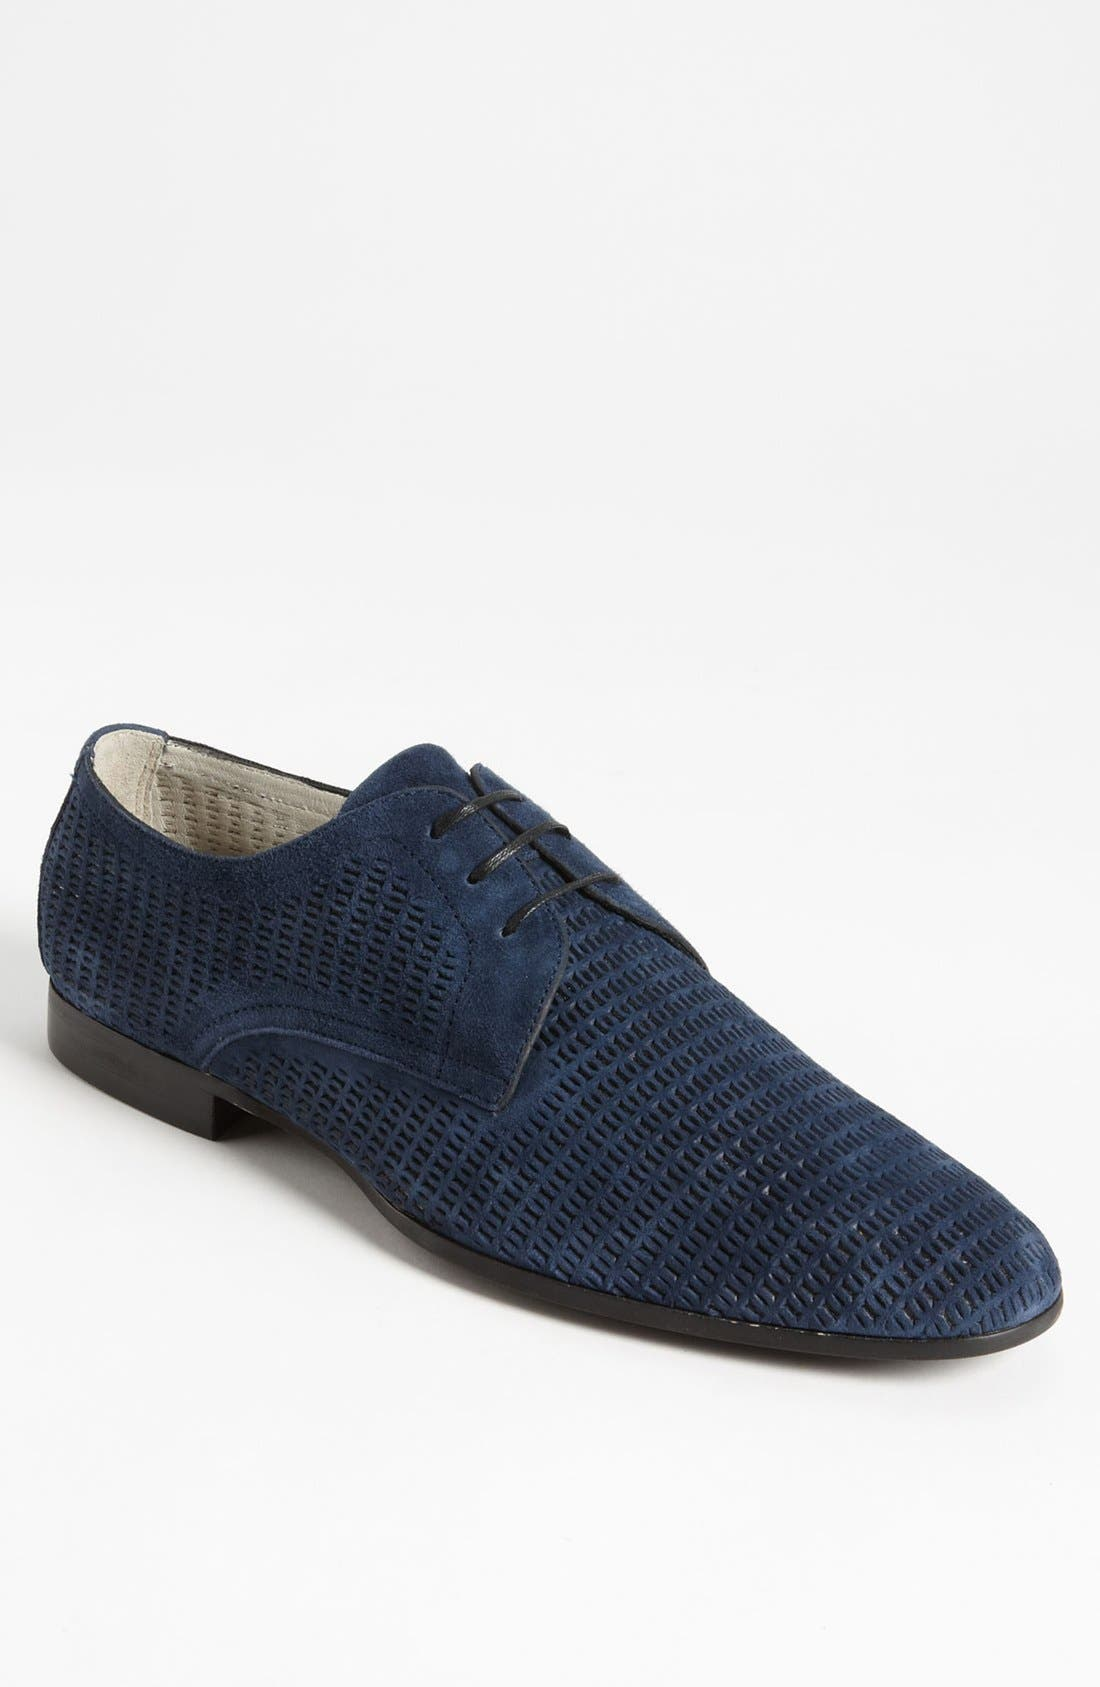 Alternate Image 1 Selected - Vince Camuto 'Adro' Derby